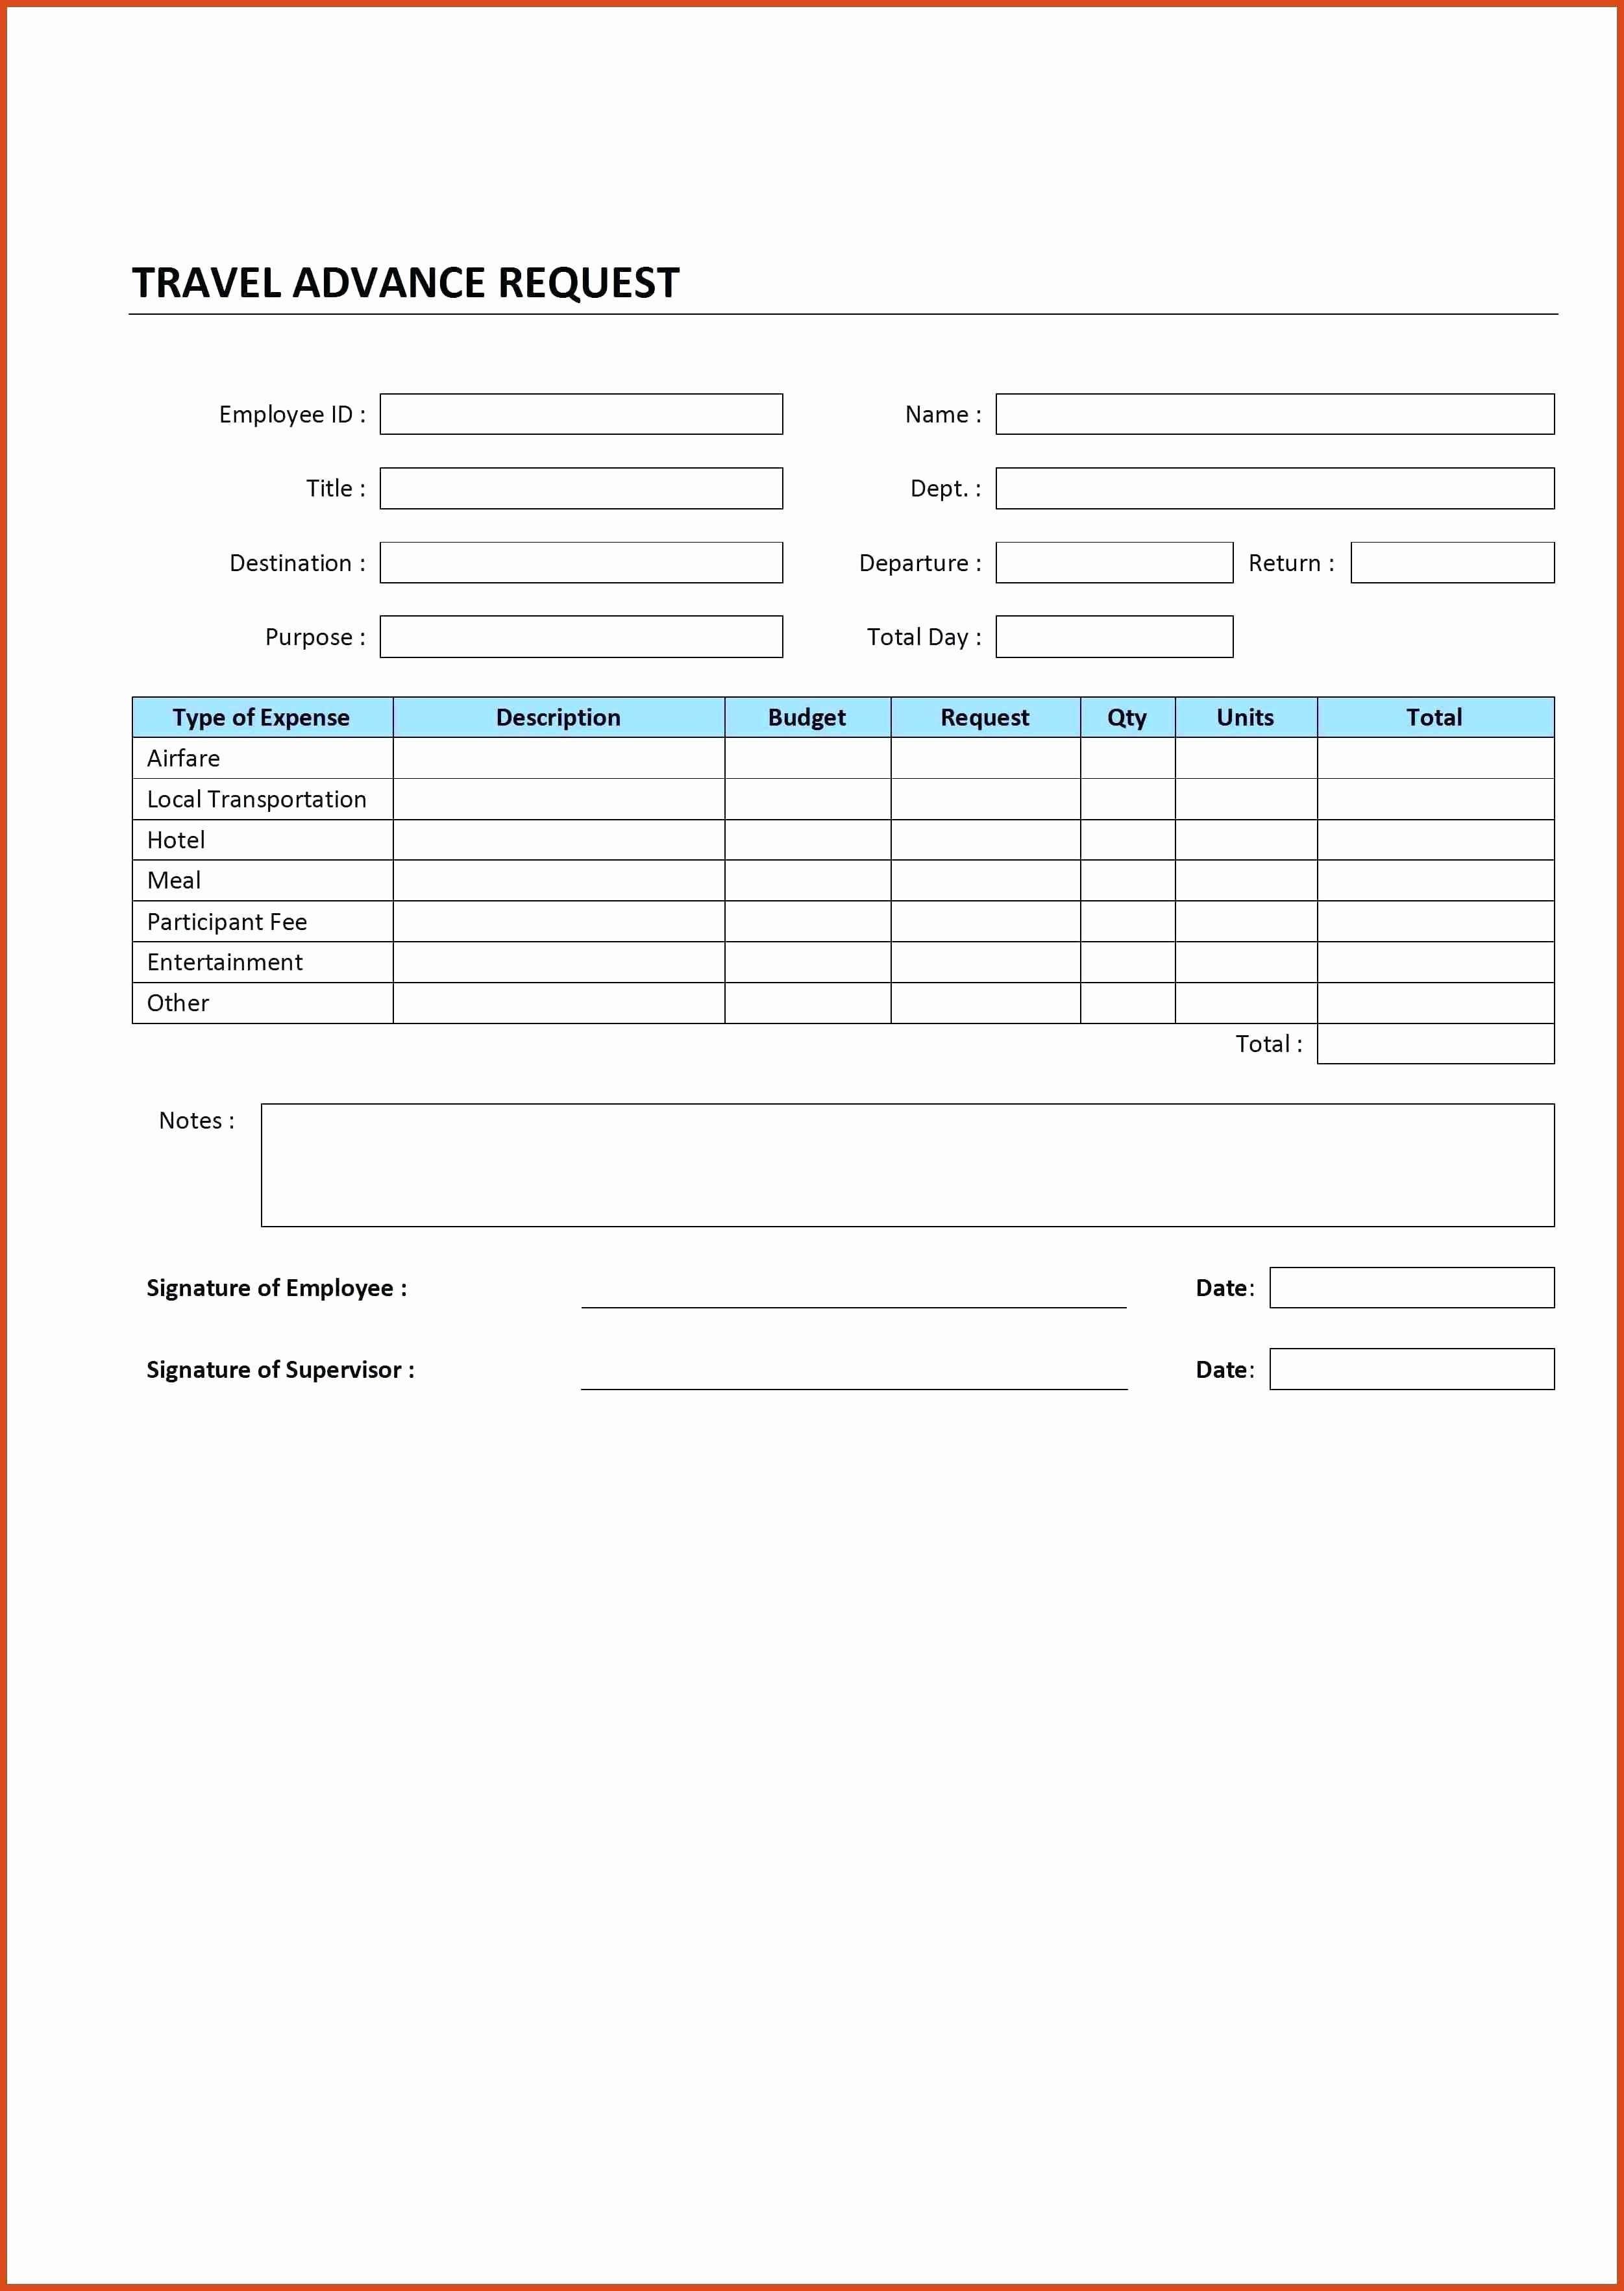 Lost and Found form Sample Awesome Template Template Holiday Request form Generic Employee